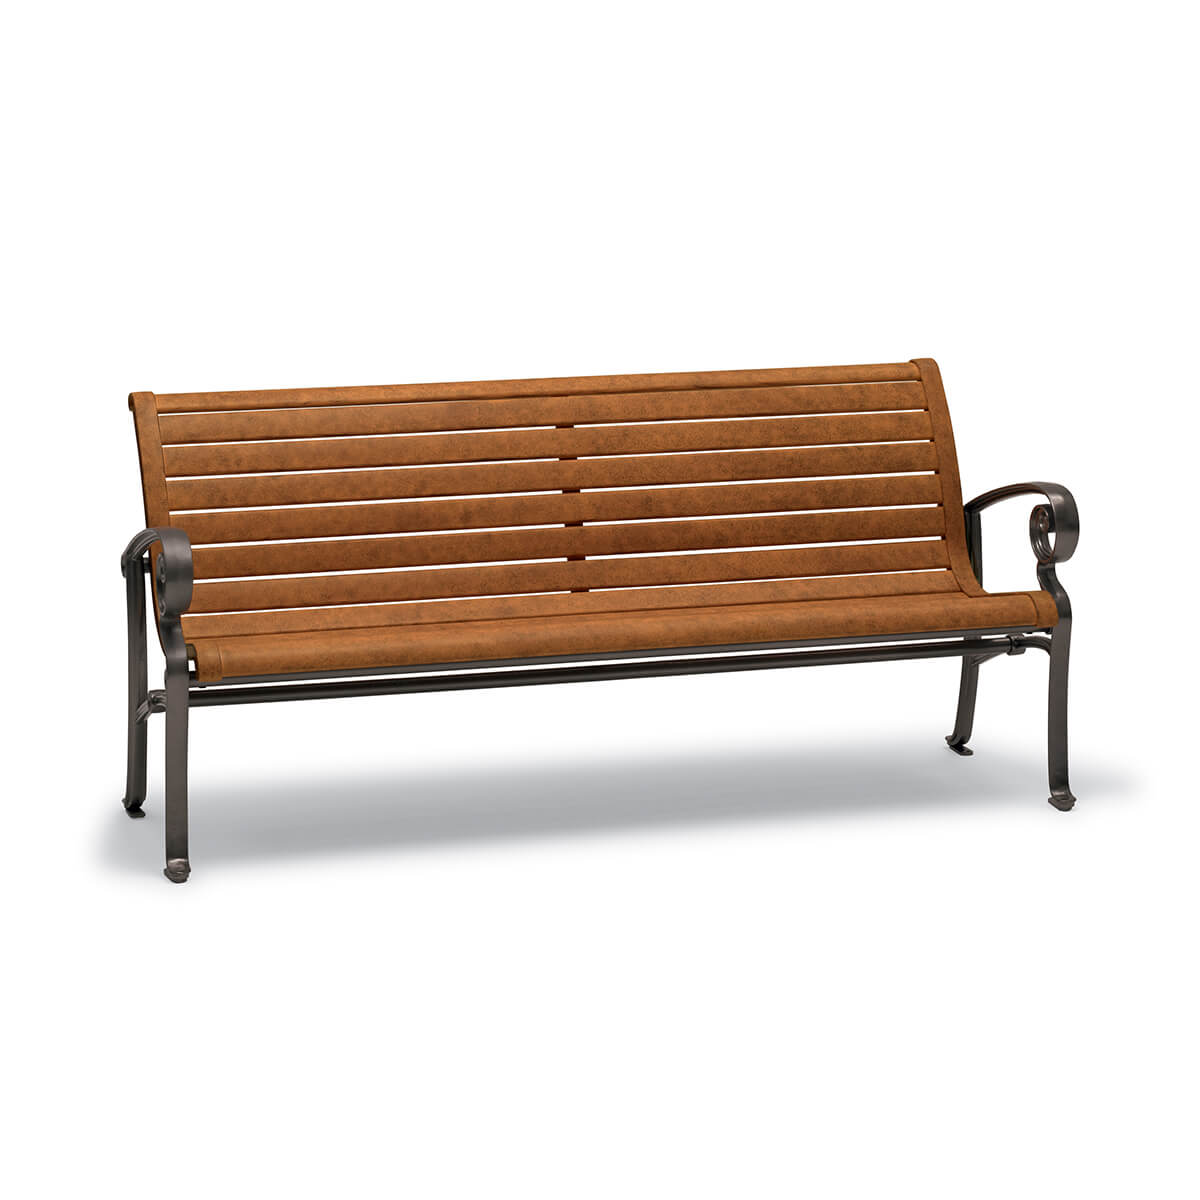 Commercial Benches